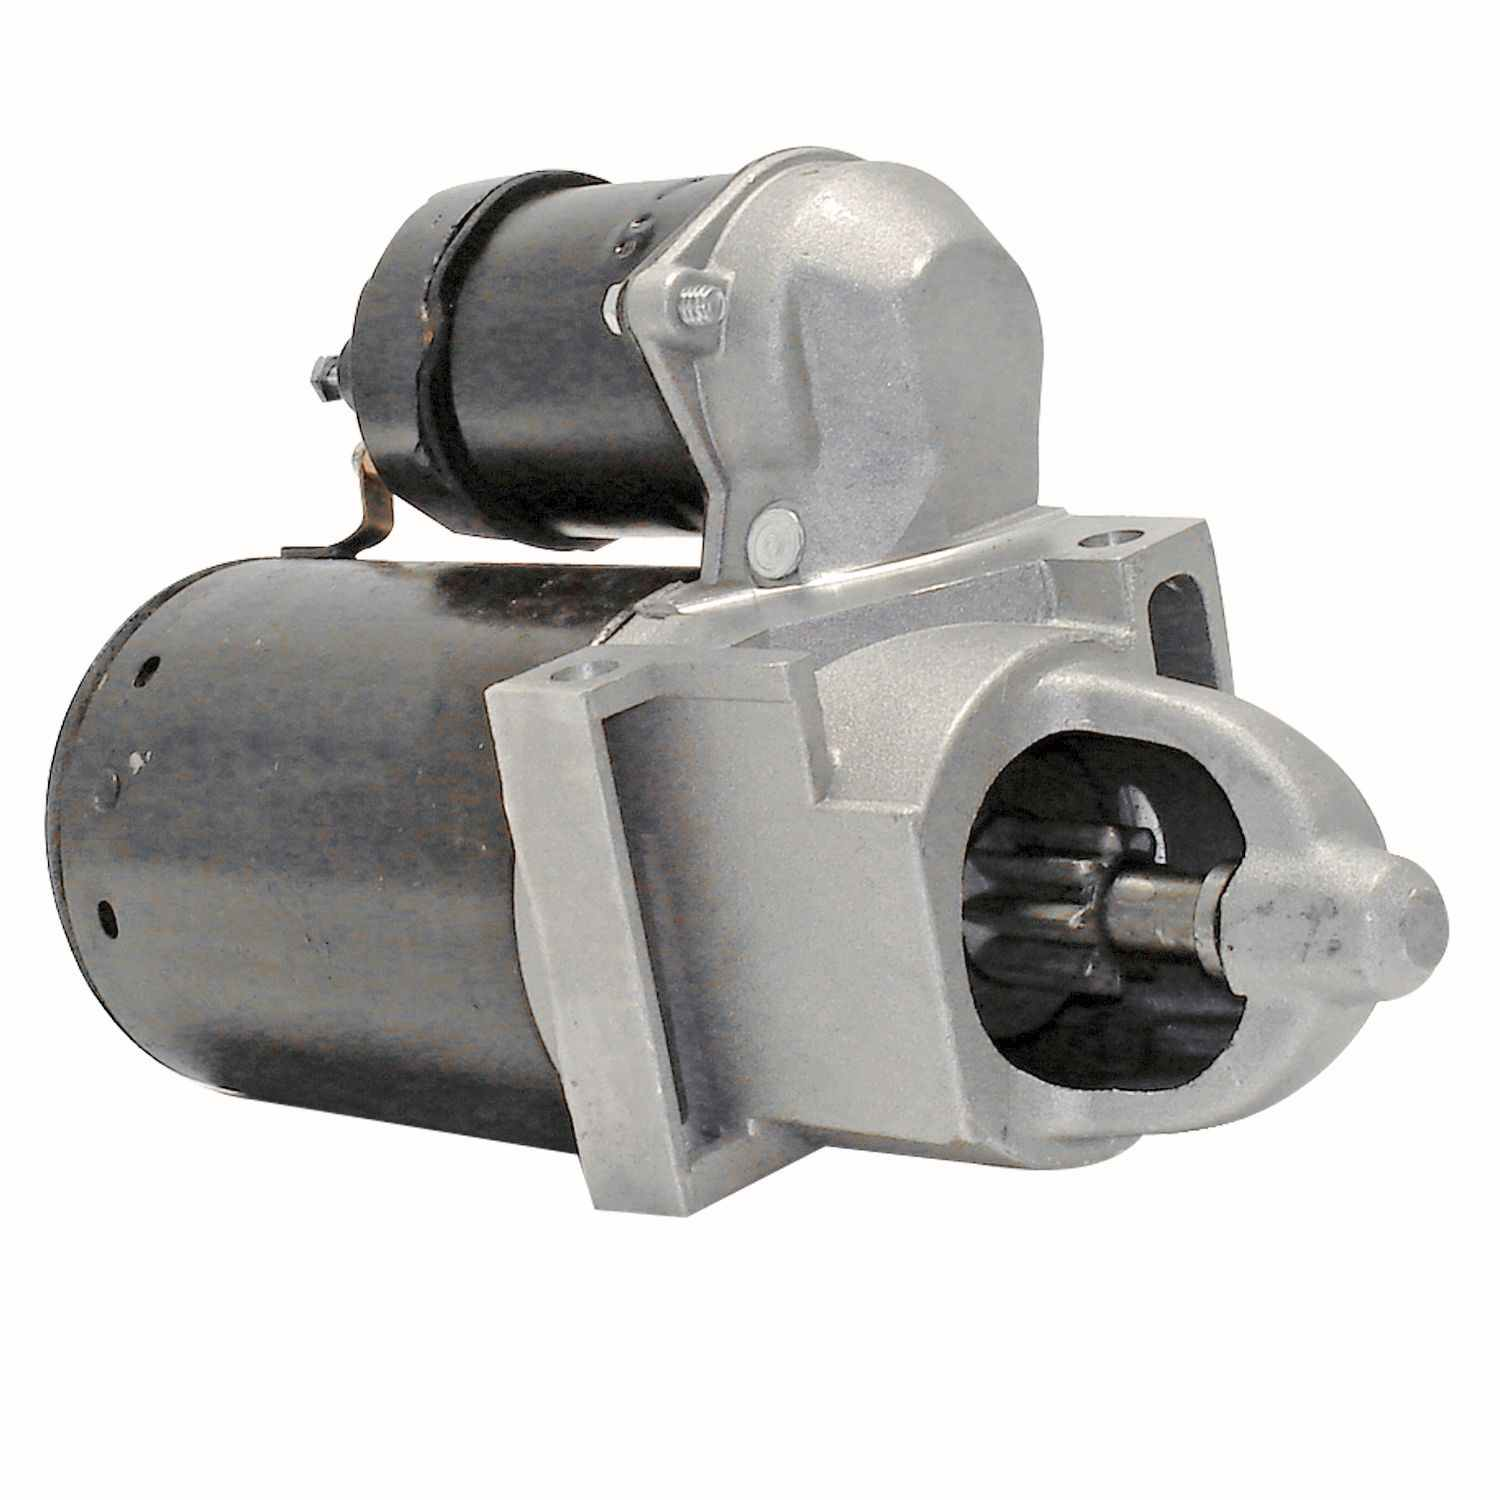 ACDELCO GOLD/PROFESSIONAL - Reman Starter Motor - DCC 336-1157A